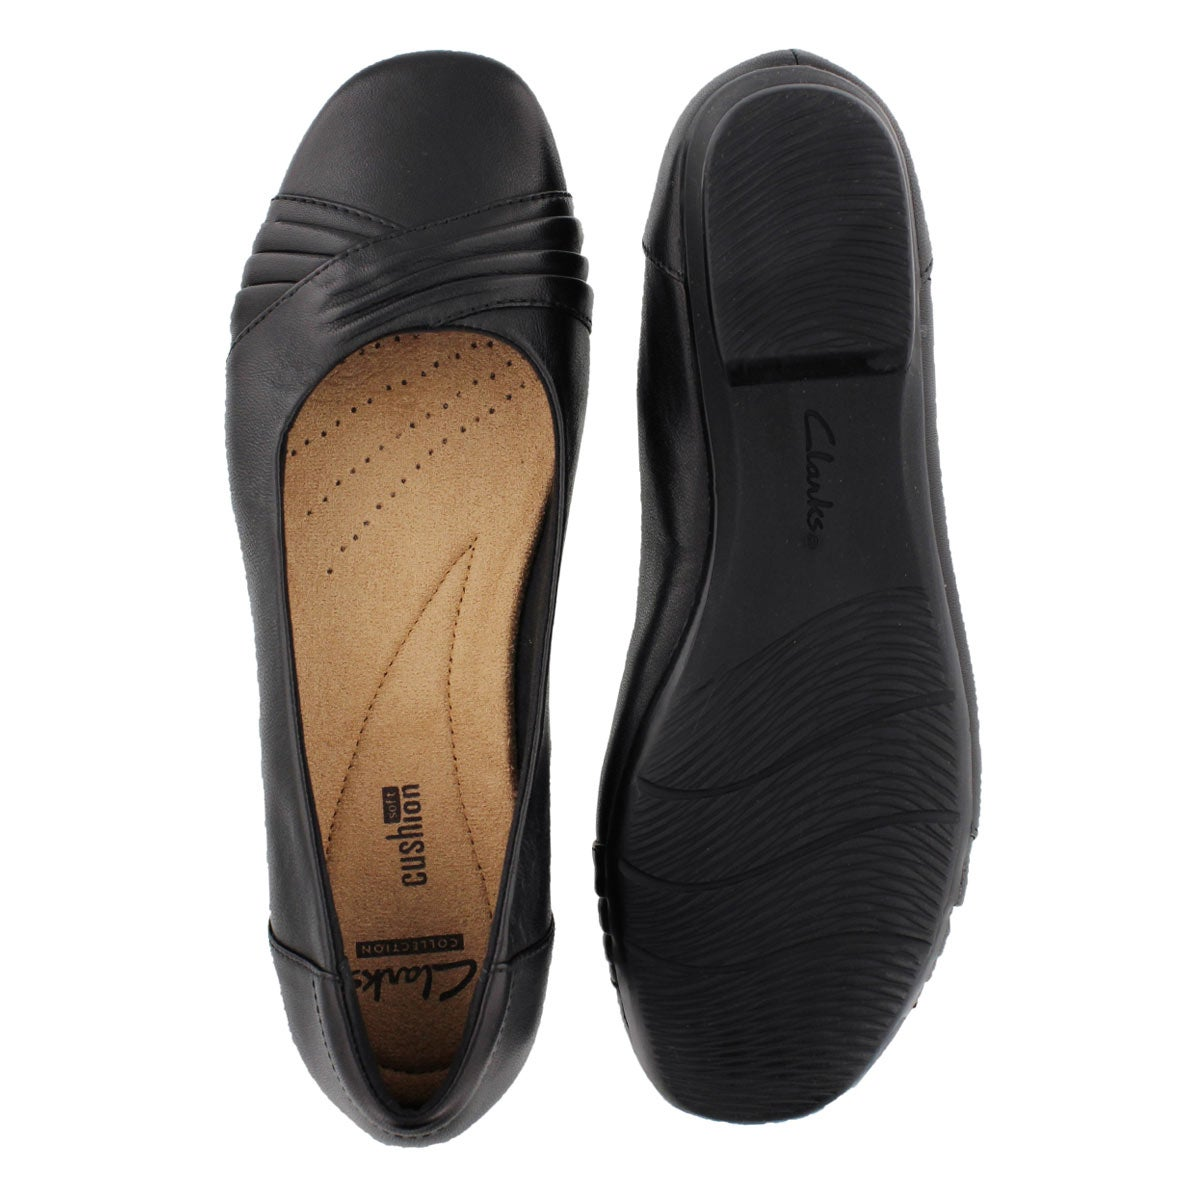 Lds Blanche Cam black slip on dress shoe